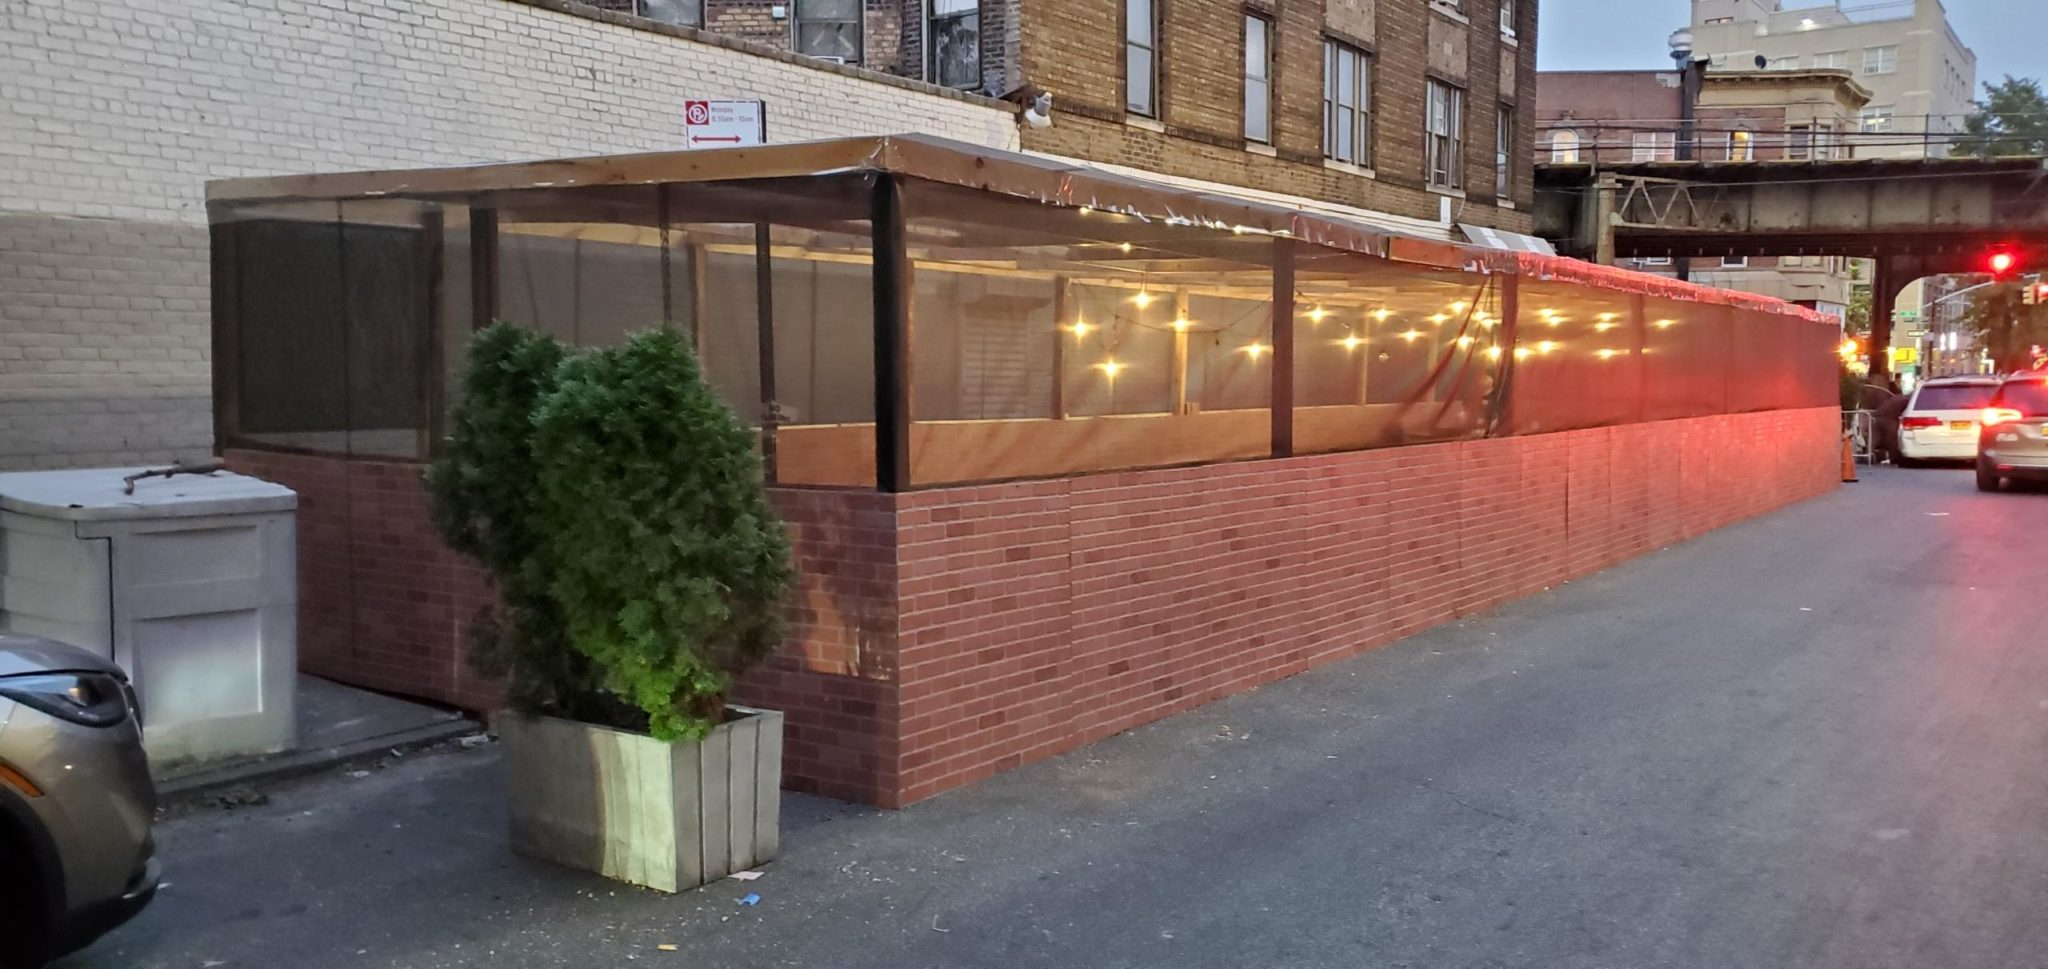 Large Outdoor Dining Space Erected To Serve Charity Meals For Rosh Hashanah In a Safe Setting at Masbia of Boro Park